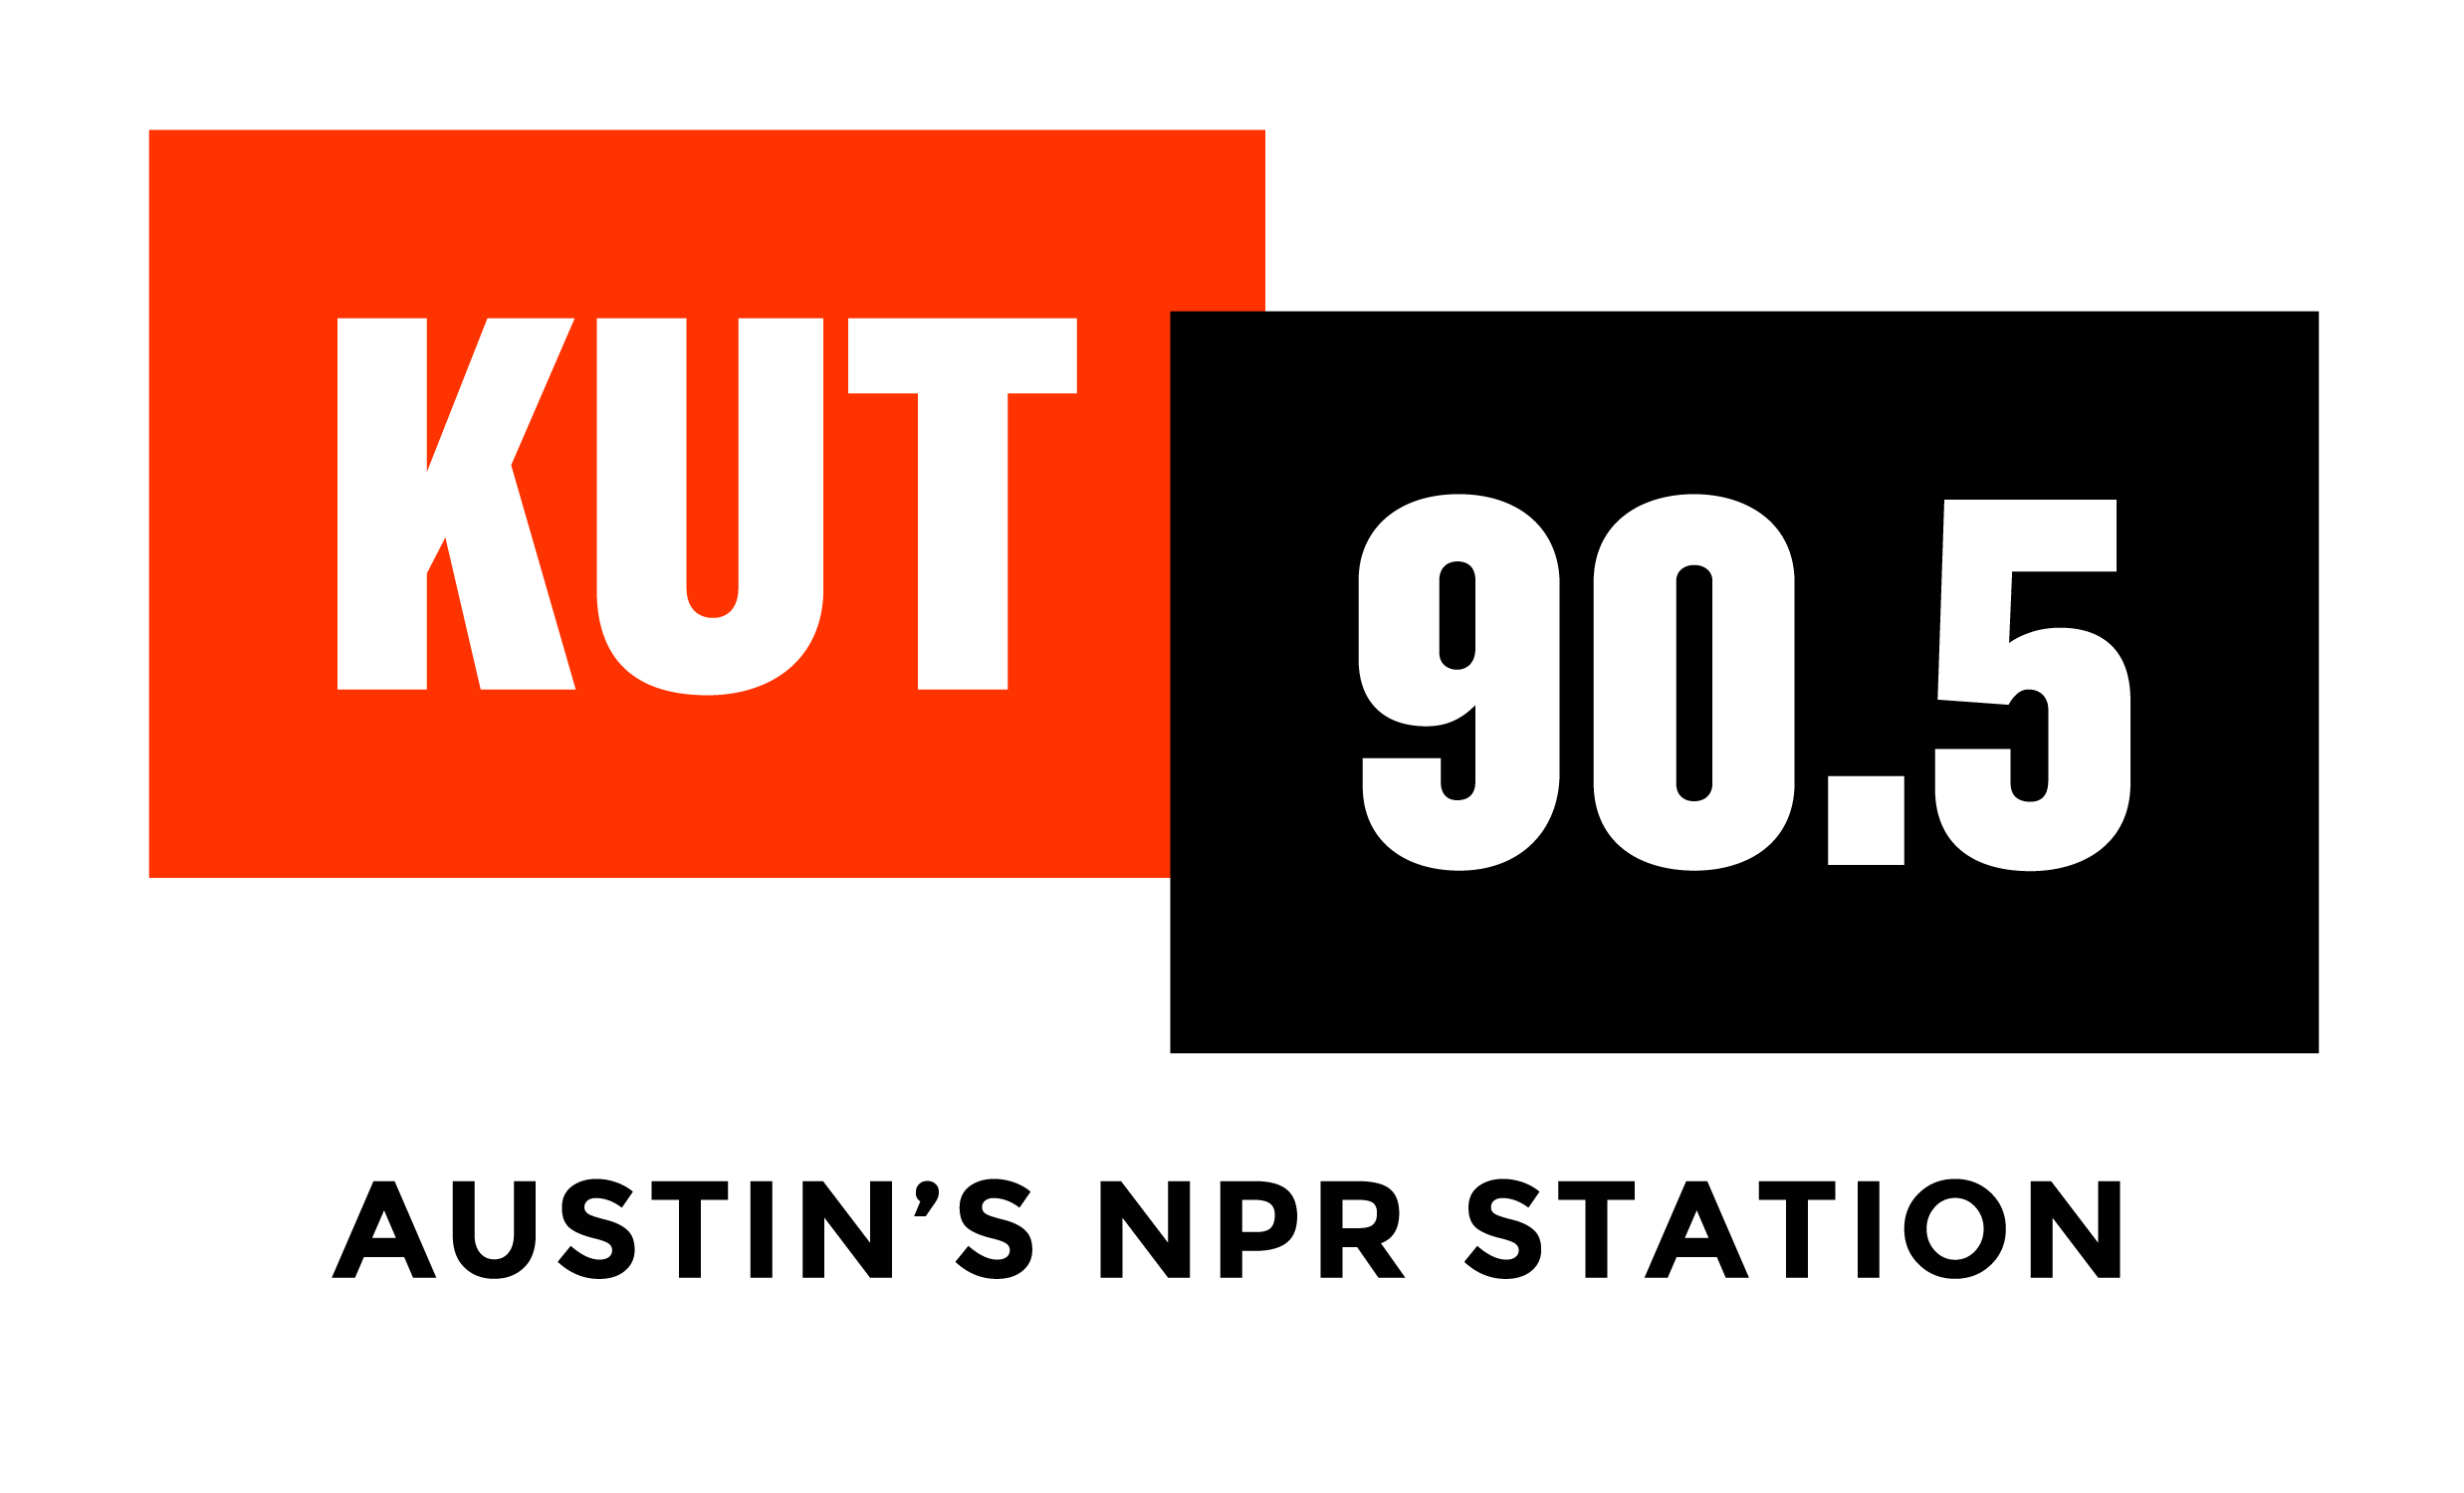 KUT-905-tag-transparency.png